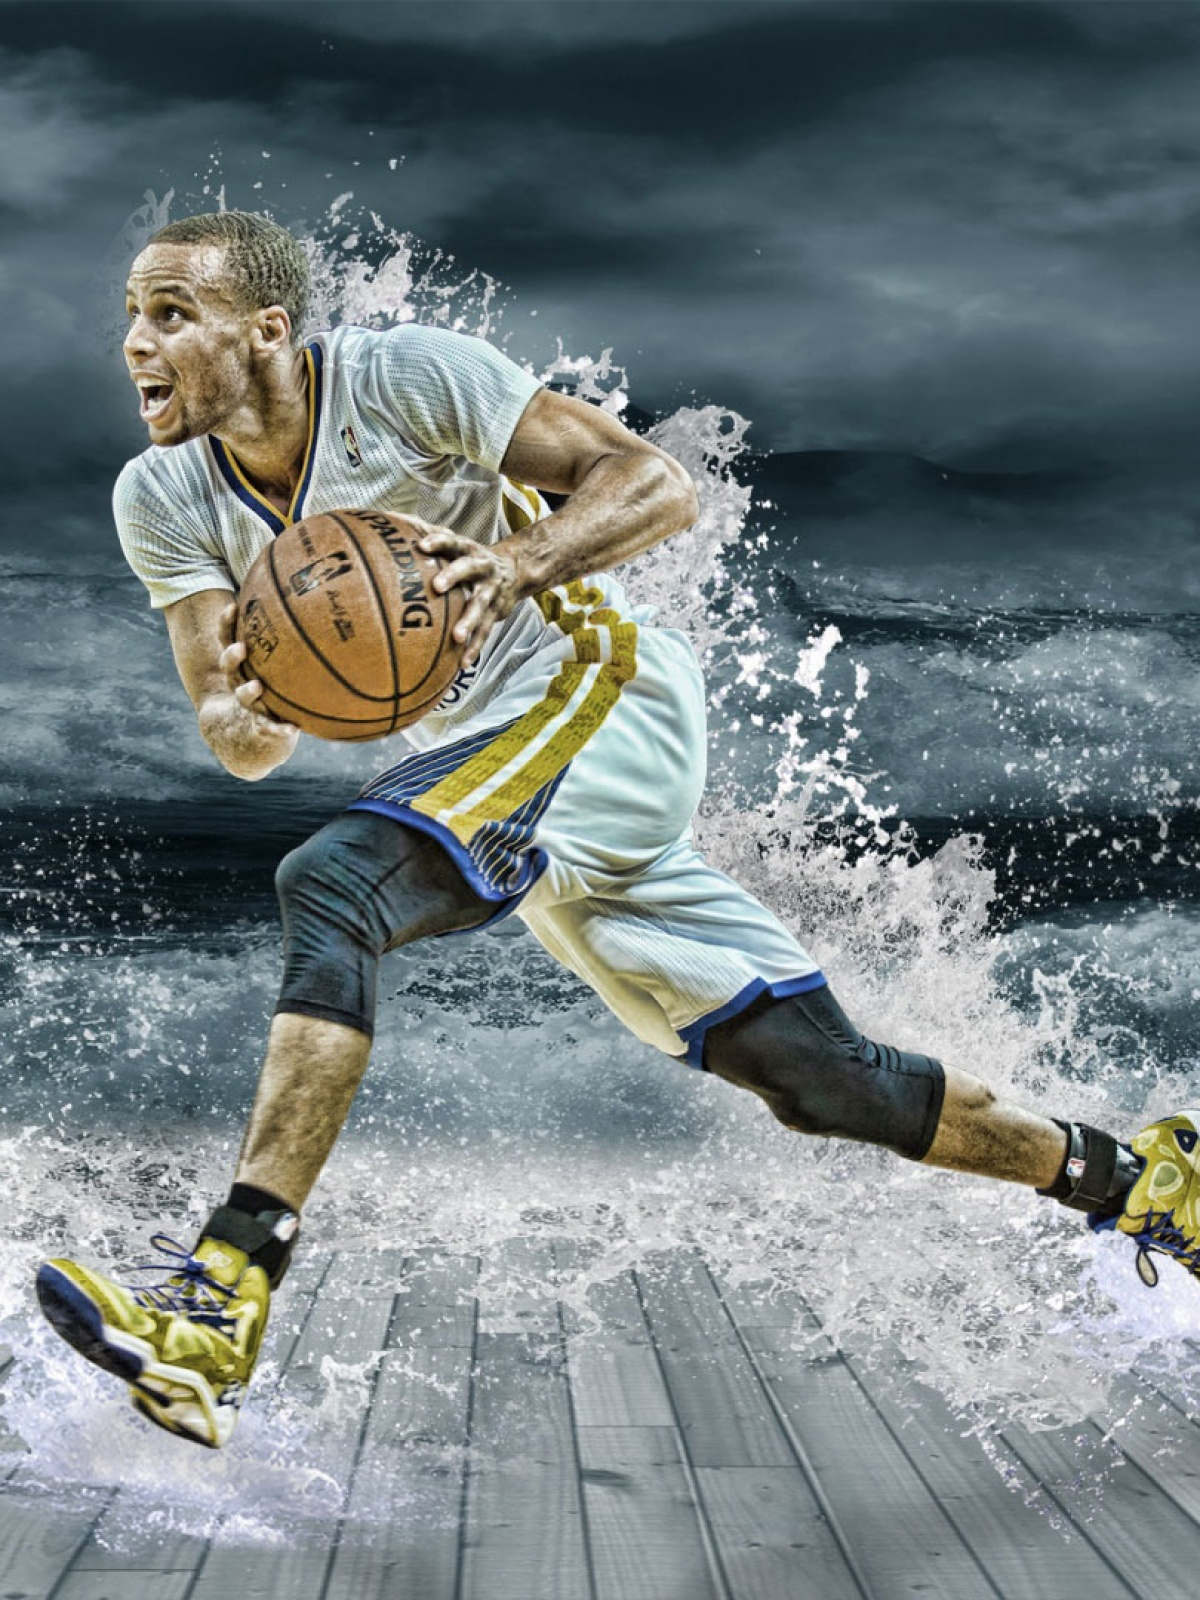 Iphone Stephen Curry Wallpaper | Full HD Pictures